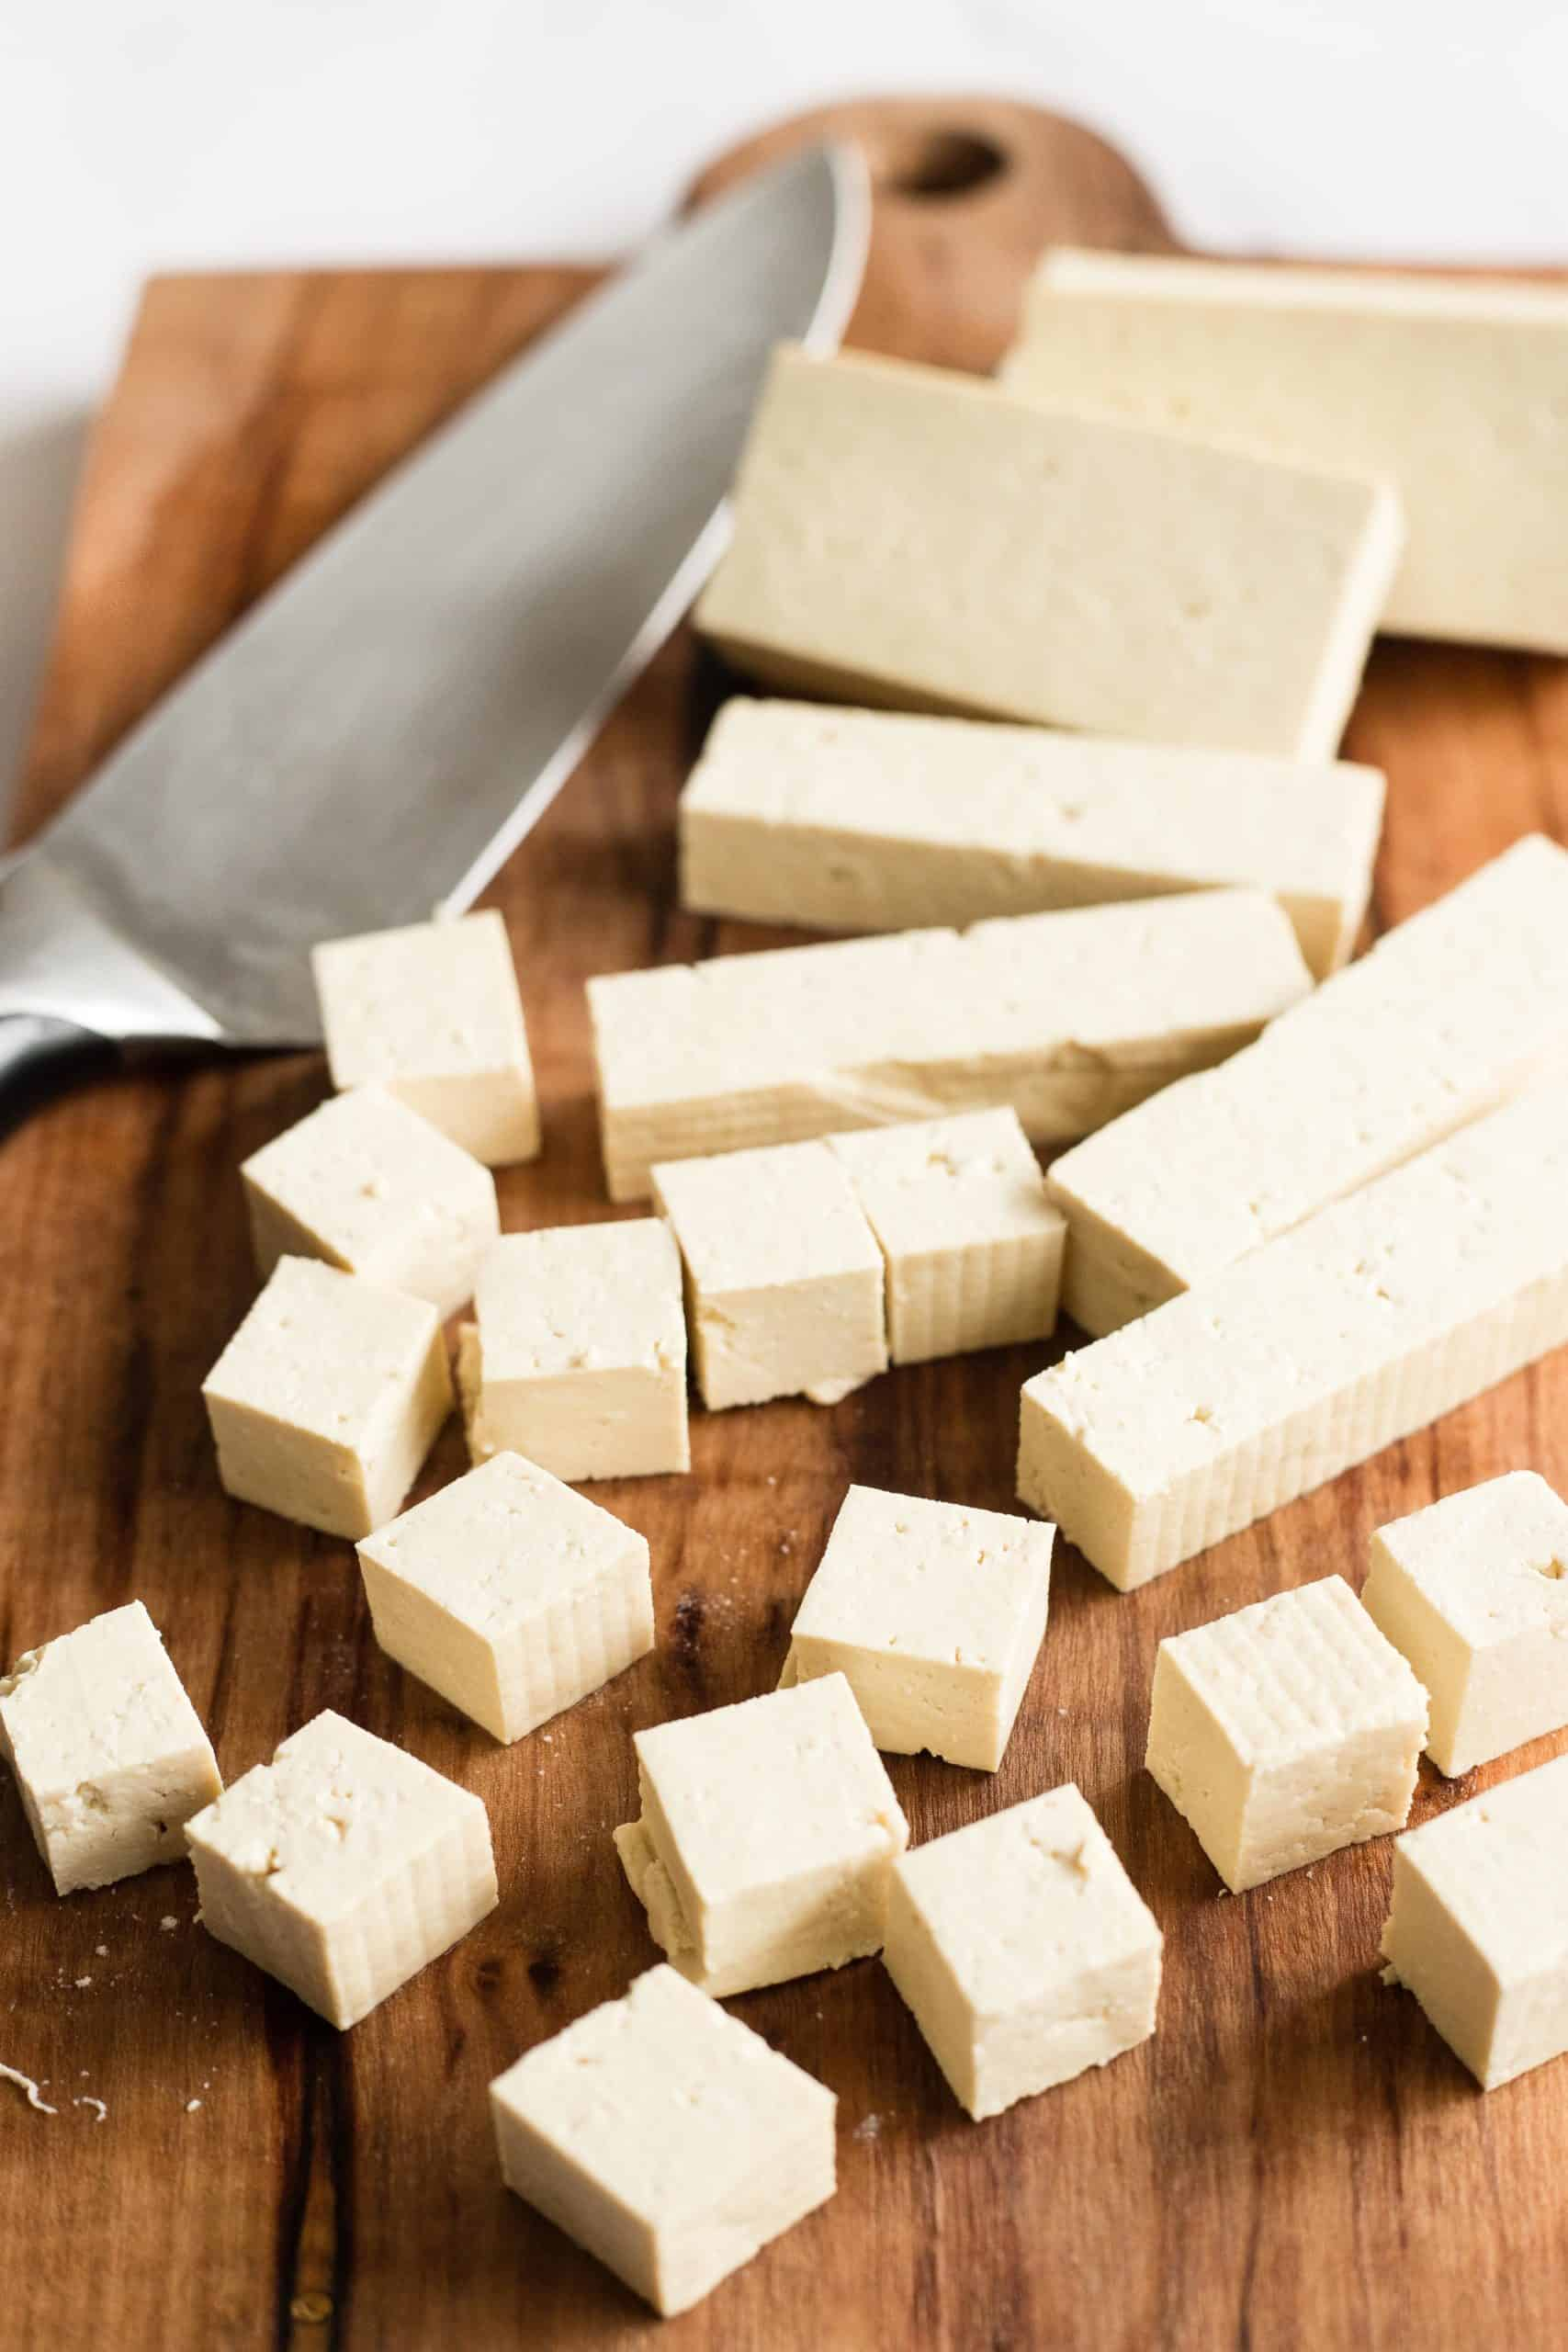 Tofu being cut into small cubes on a wooden chopping board.